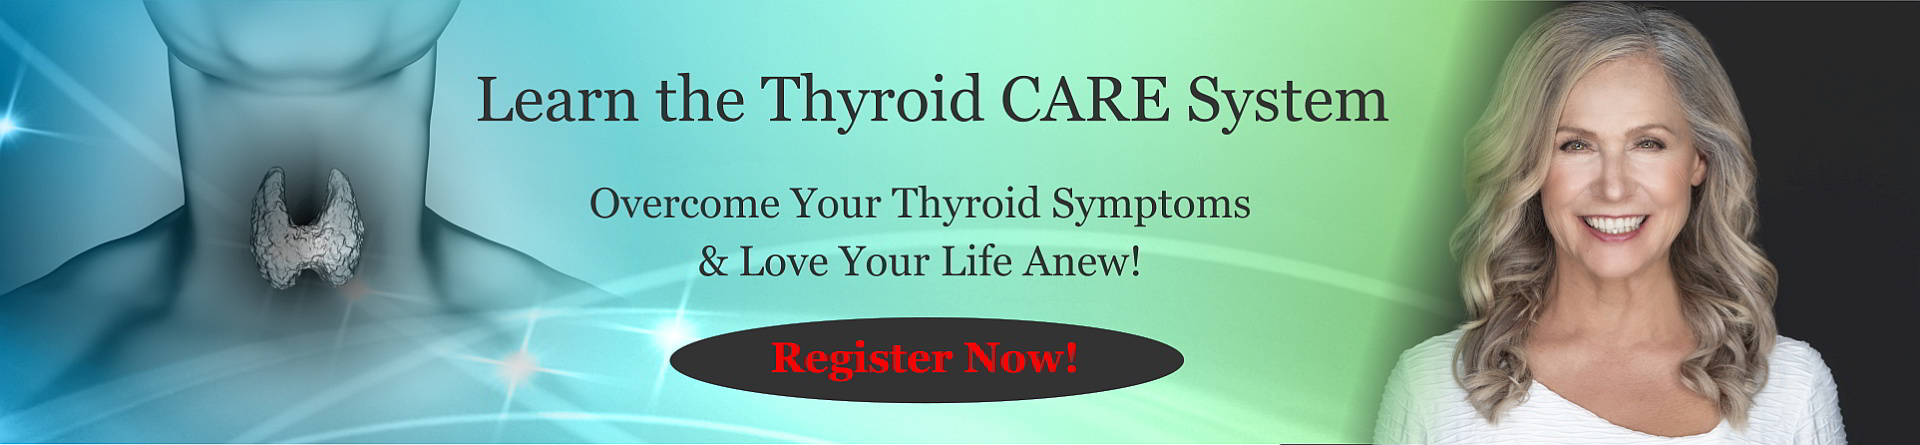 Vannette's Thyroid Care Program - Overcome Thyroid Symptoms